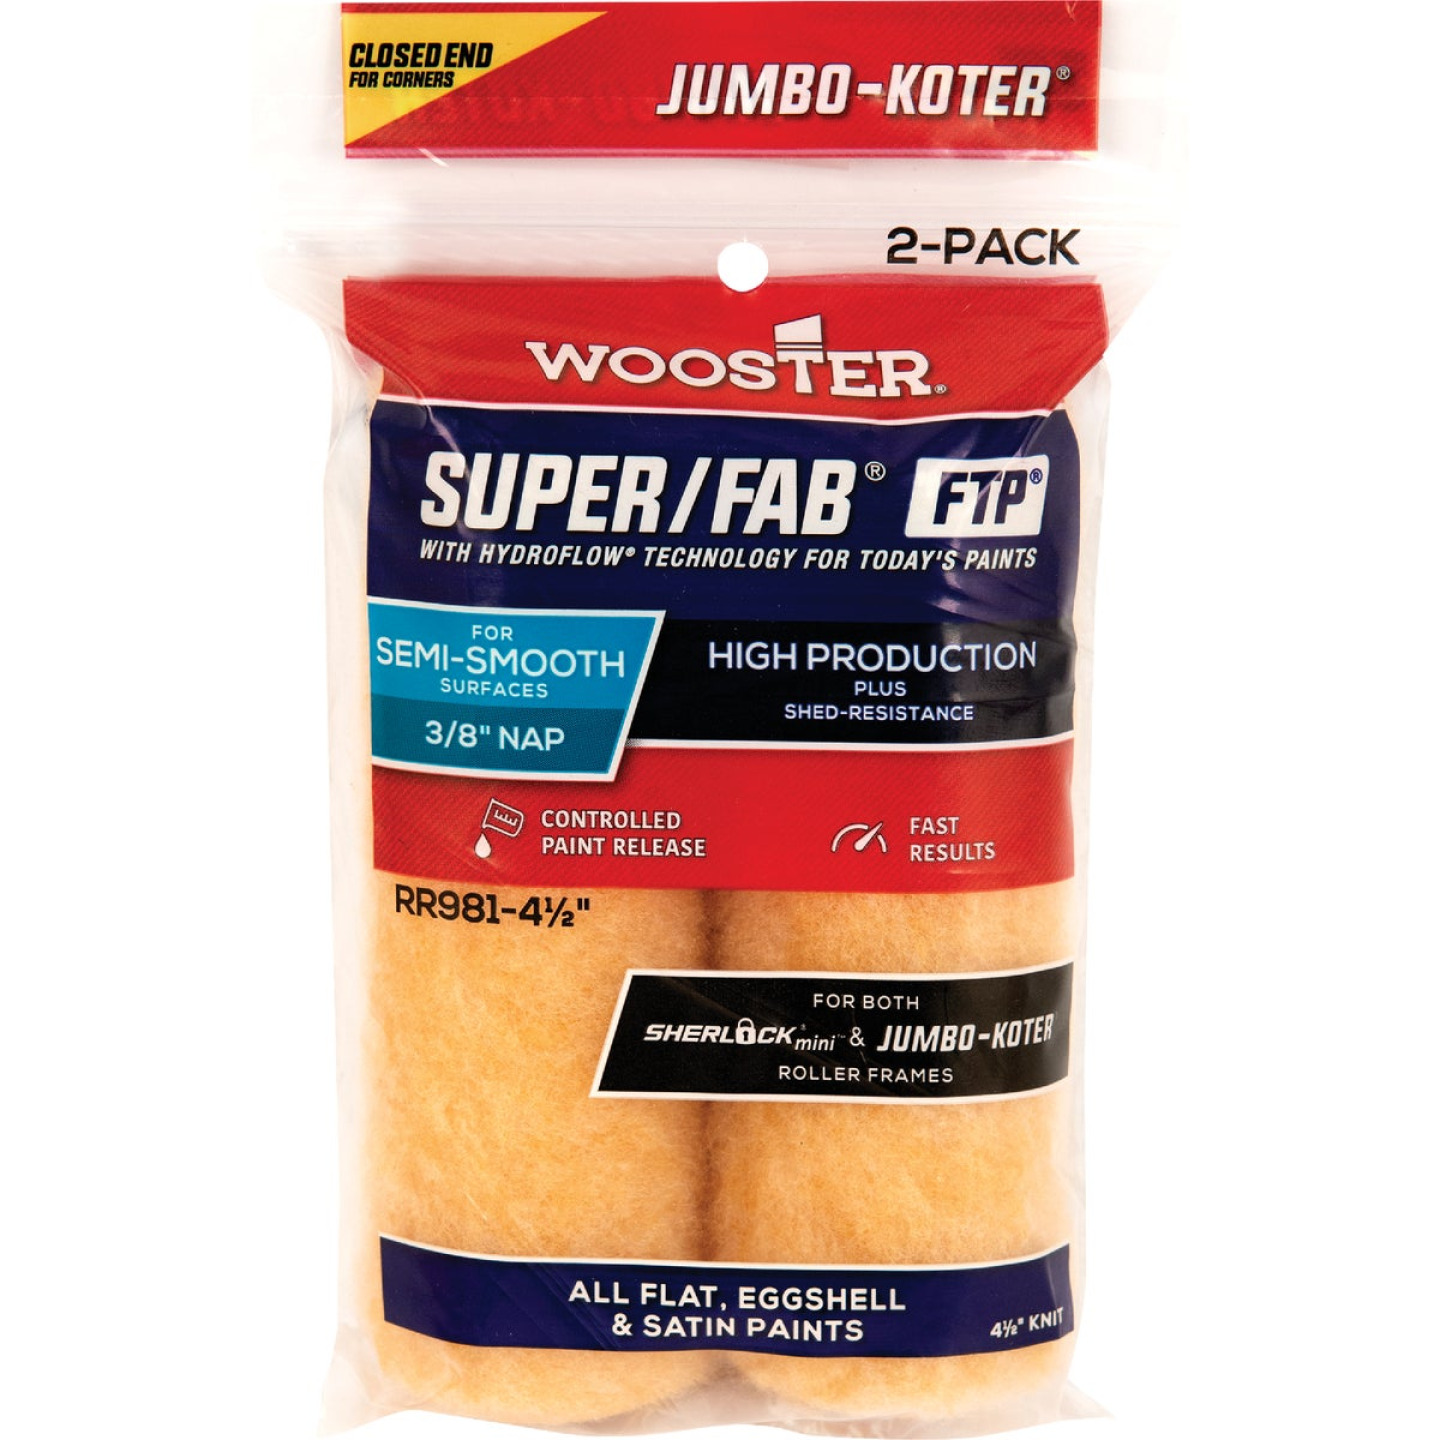 Jumbo-Koter S/F FTP 4-1/2 In. x 3/8 In. Knit Roller Cover (2-Pack) Image 1